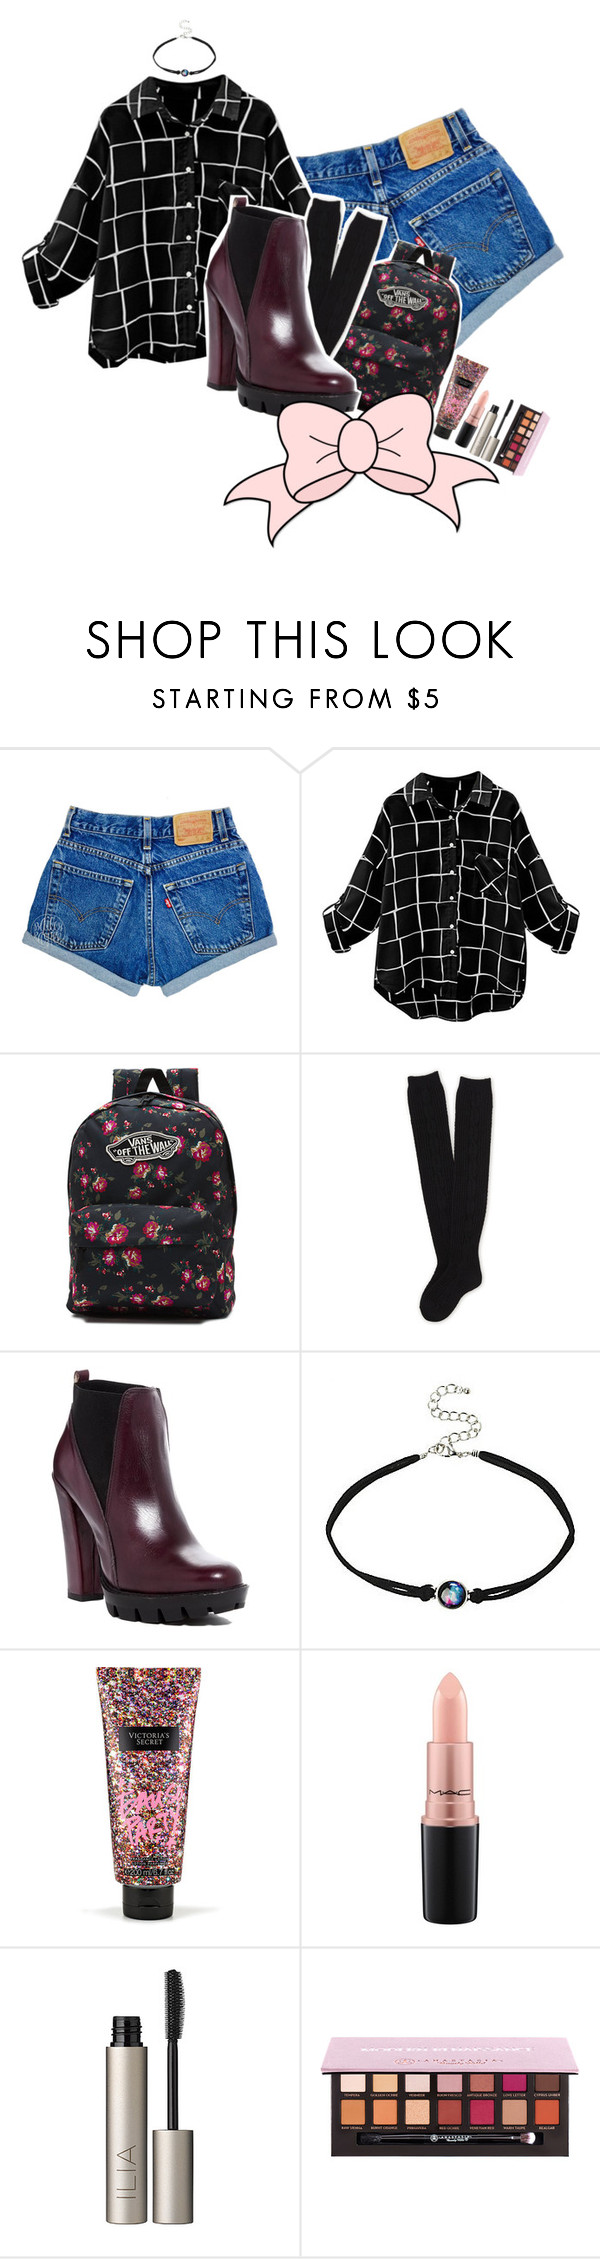 """Freedom is a State of Mind"" by peperutka-eva ❤ liked on Polyvore featuring Vans, Aéropostale, Charles David, Victoria's Secret, MAC Cosmetics and Ilia"